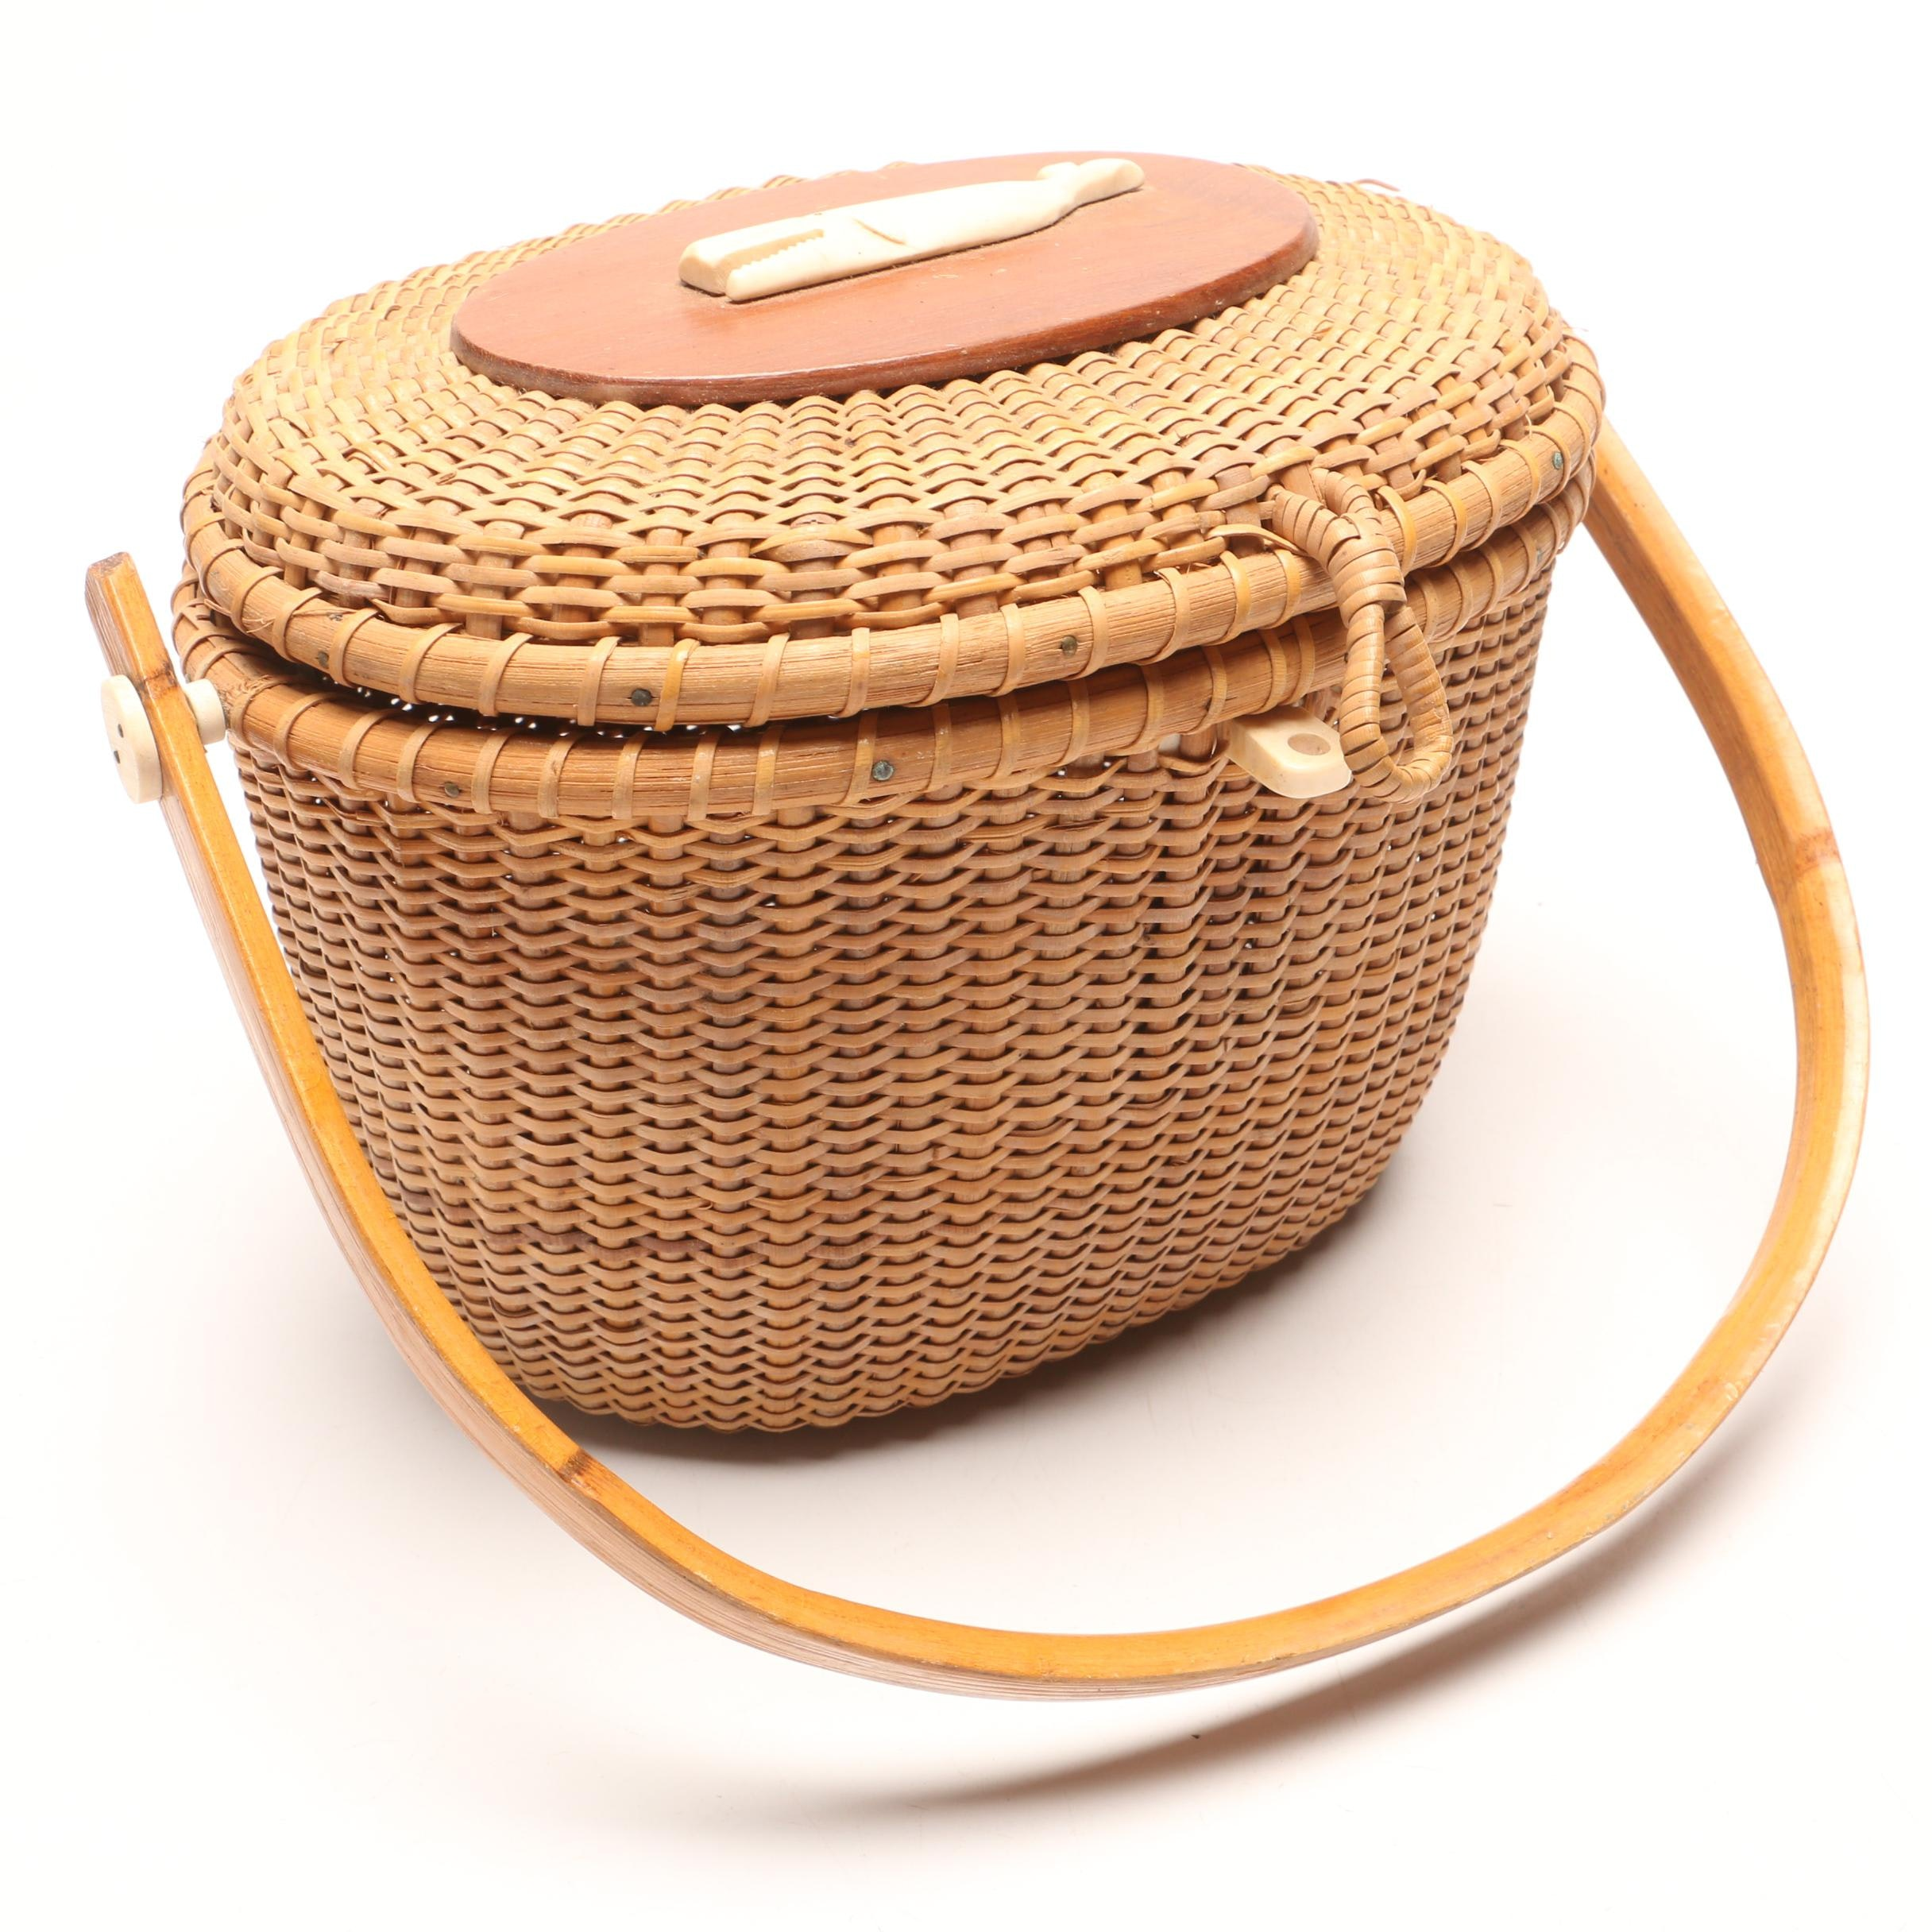 Nantucket Style Wicker Basket Purse with Carved Whale Accent